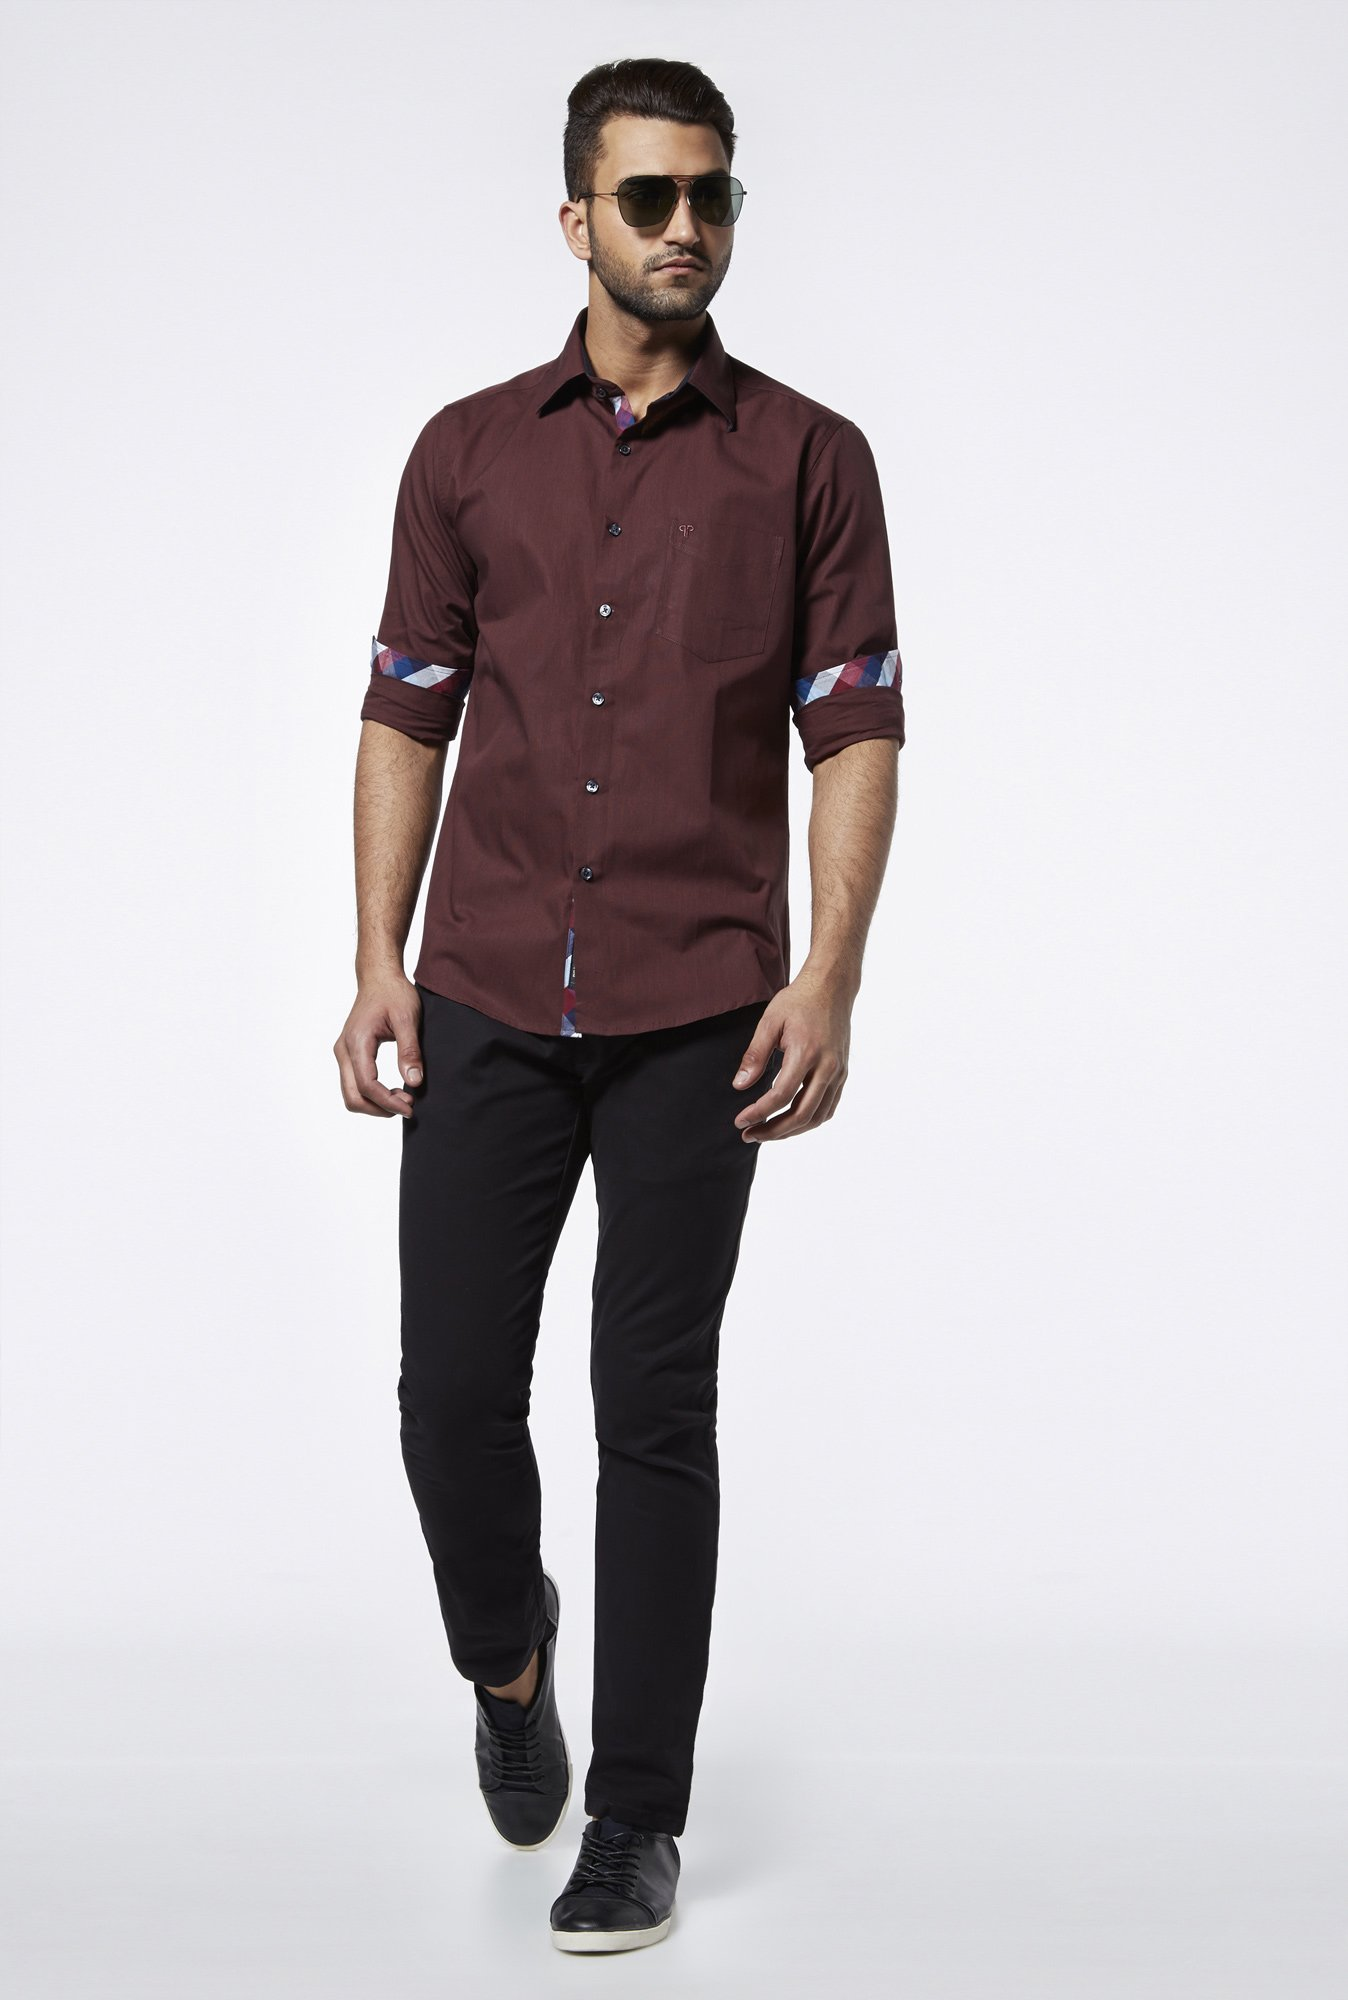 Provogue Maroon Regular Fit Shirt